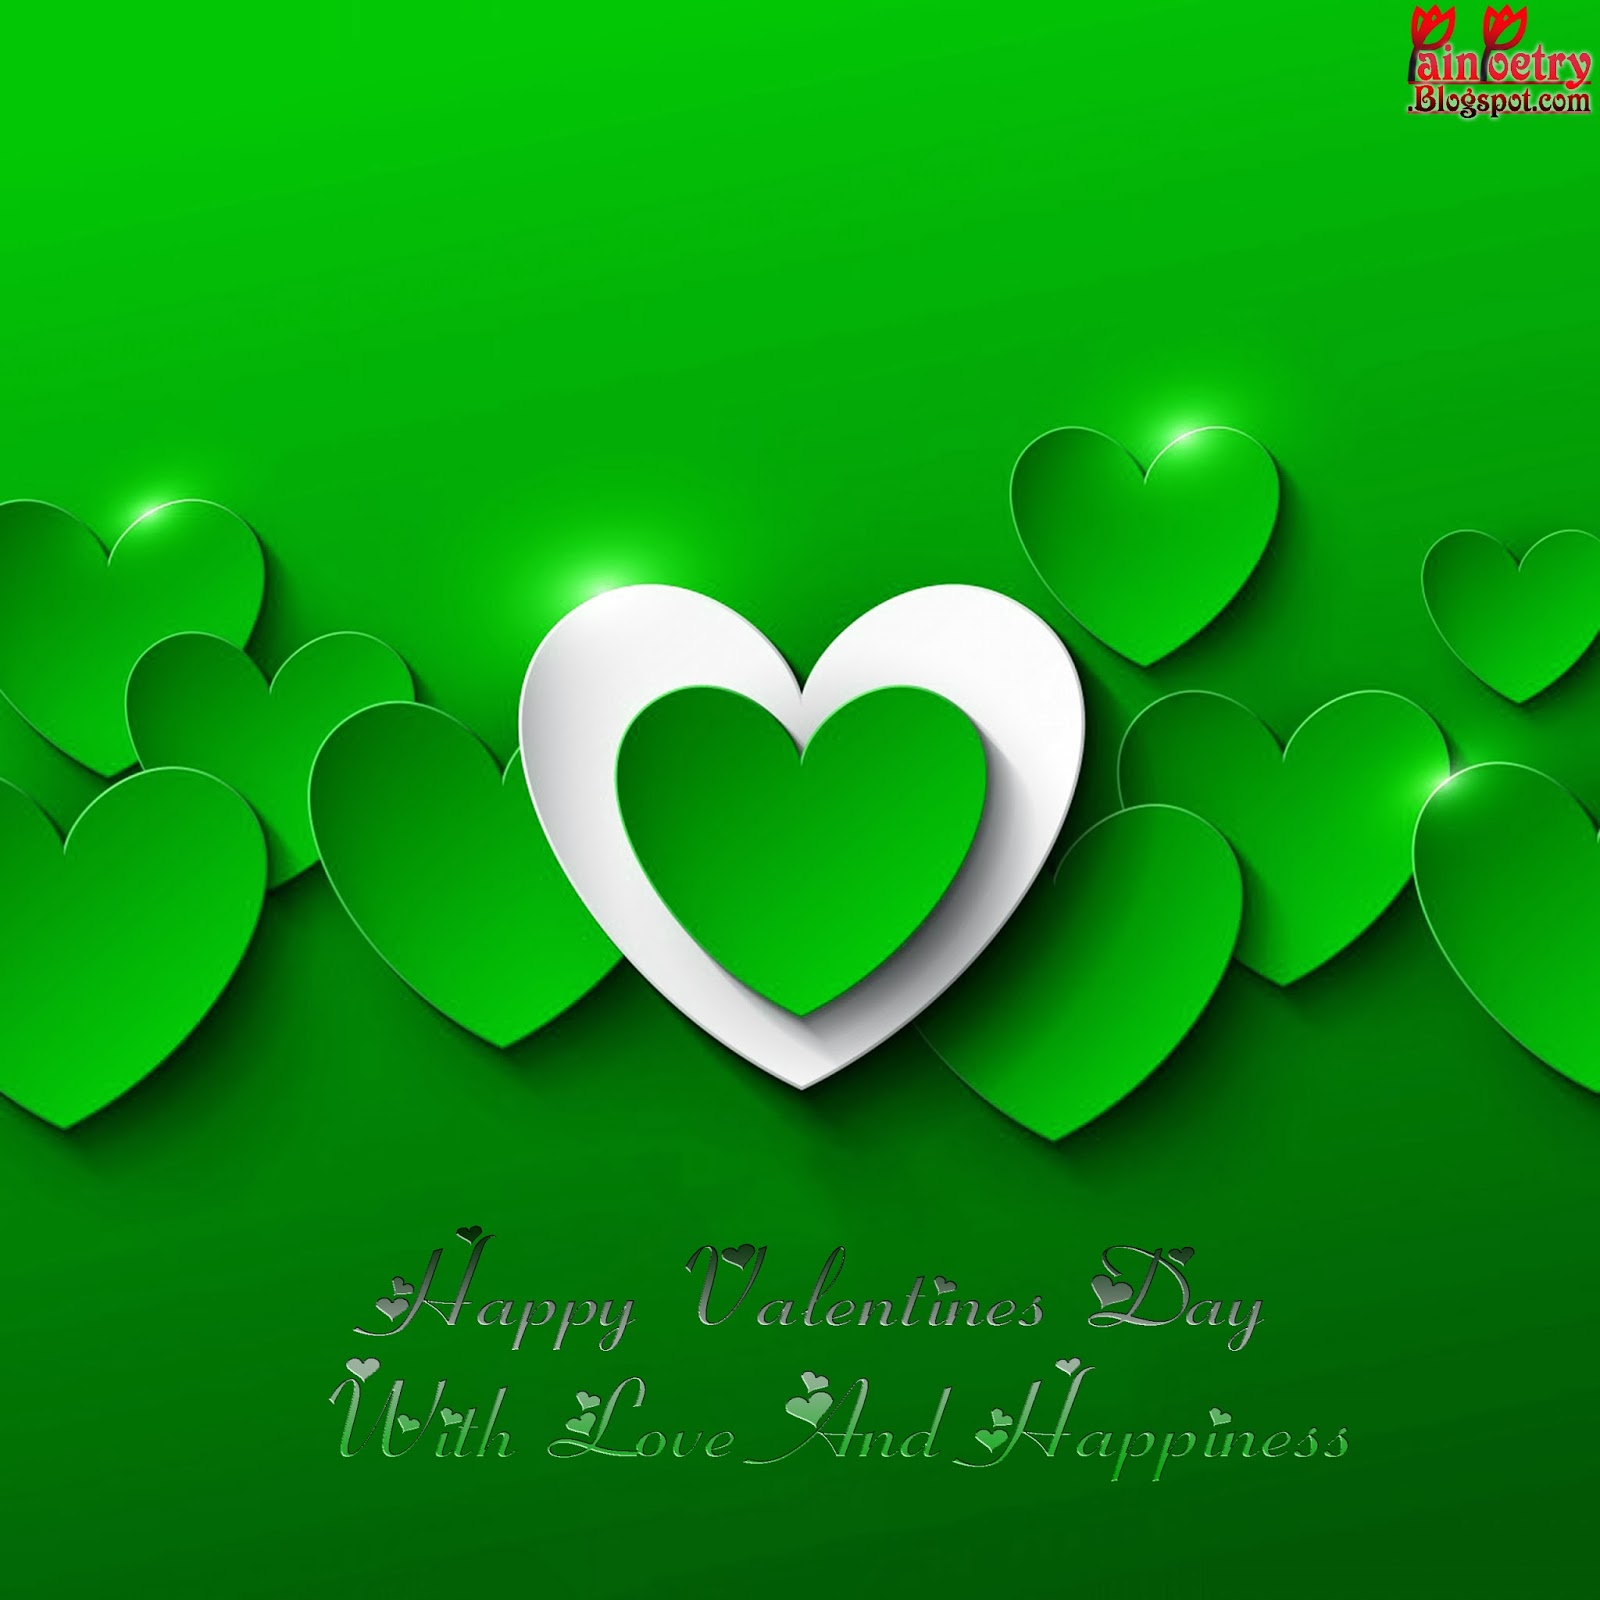 Happy-Valentines-Day-Wishes-Walpaper-With-Hearts-Image-Wide